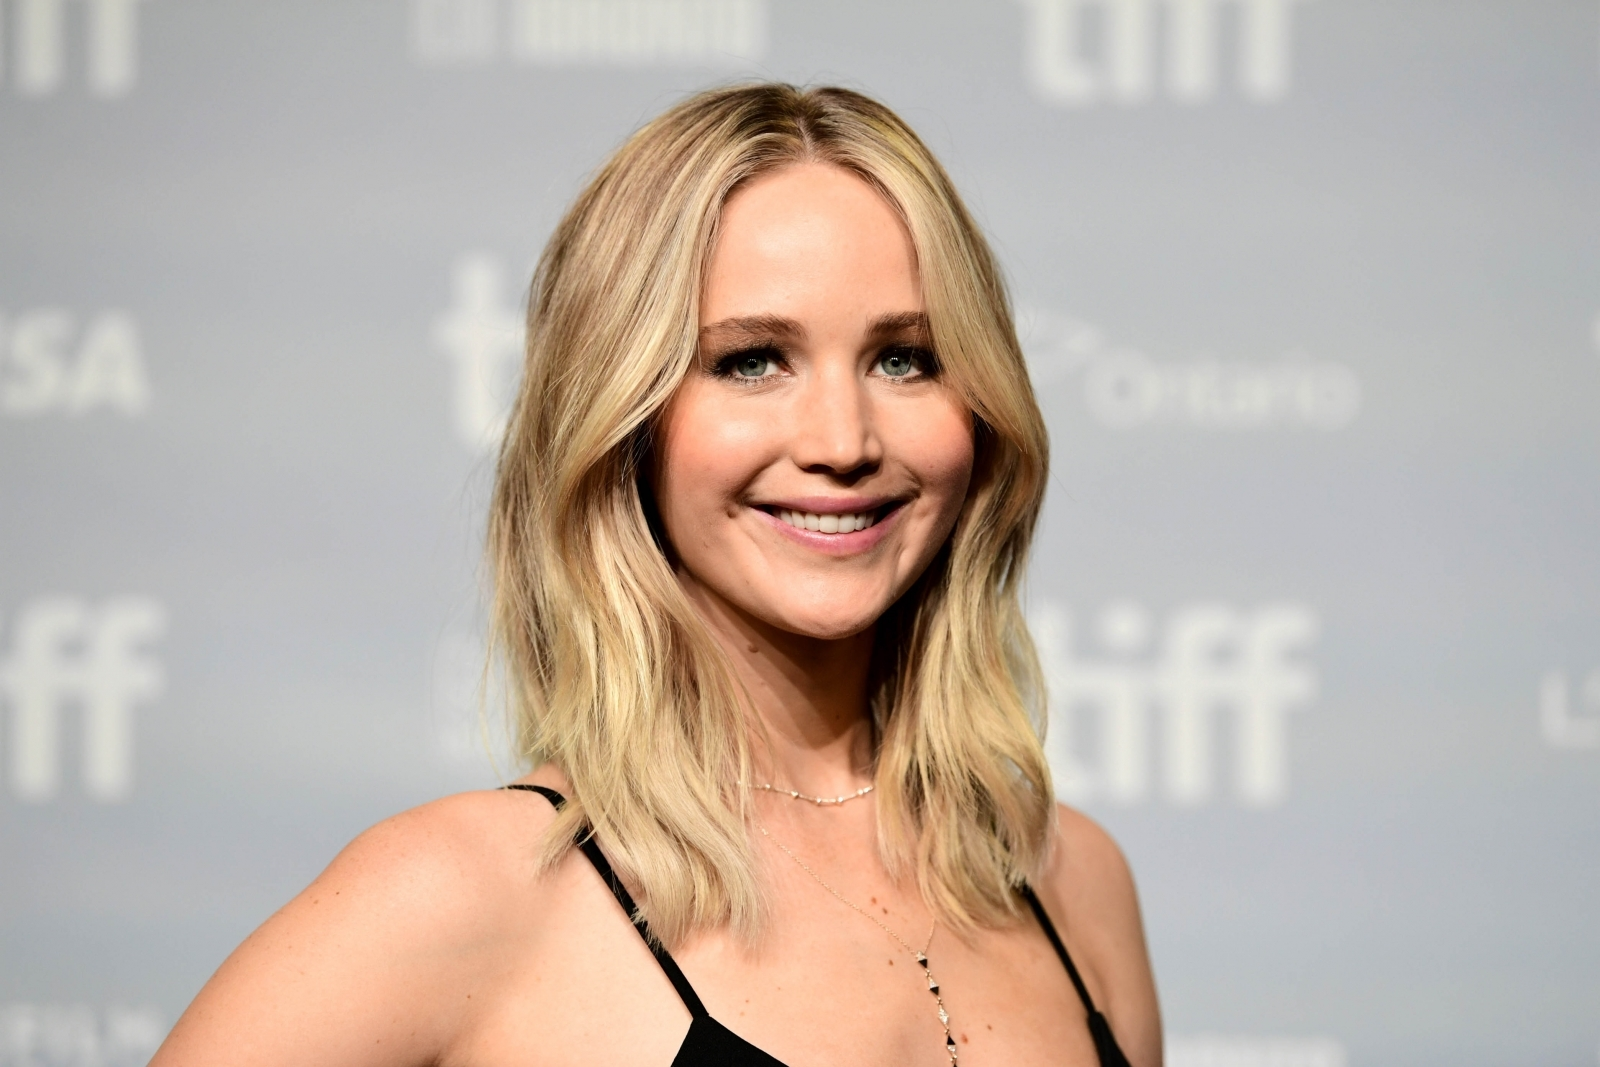 Jennifer Lawrence takes first red carpet photos with boyfriend Darren Aronofsky